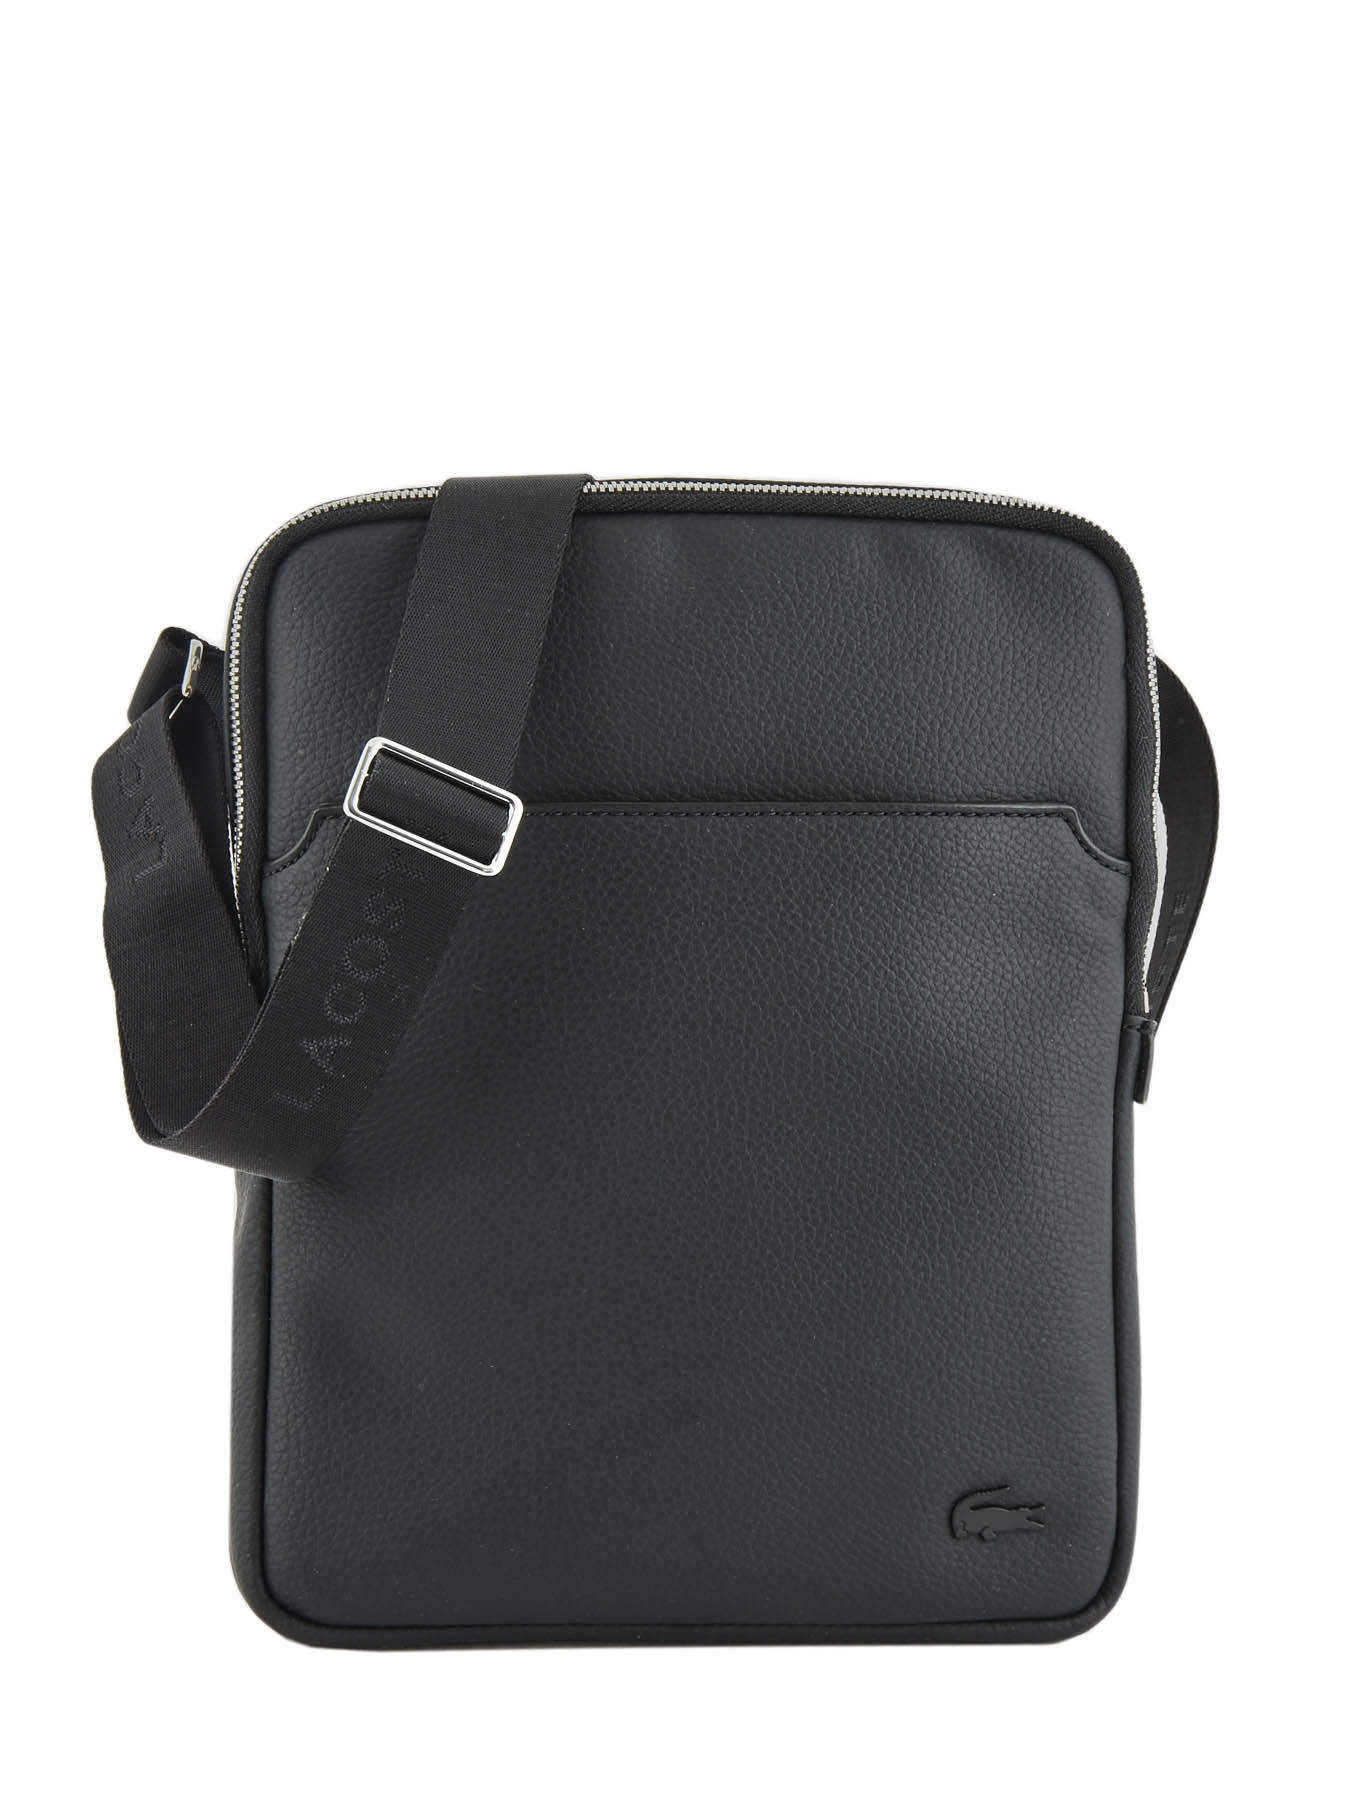 huge inventory save up to 80% top brands Crossbody bag LACOSTE